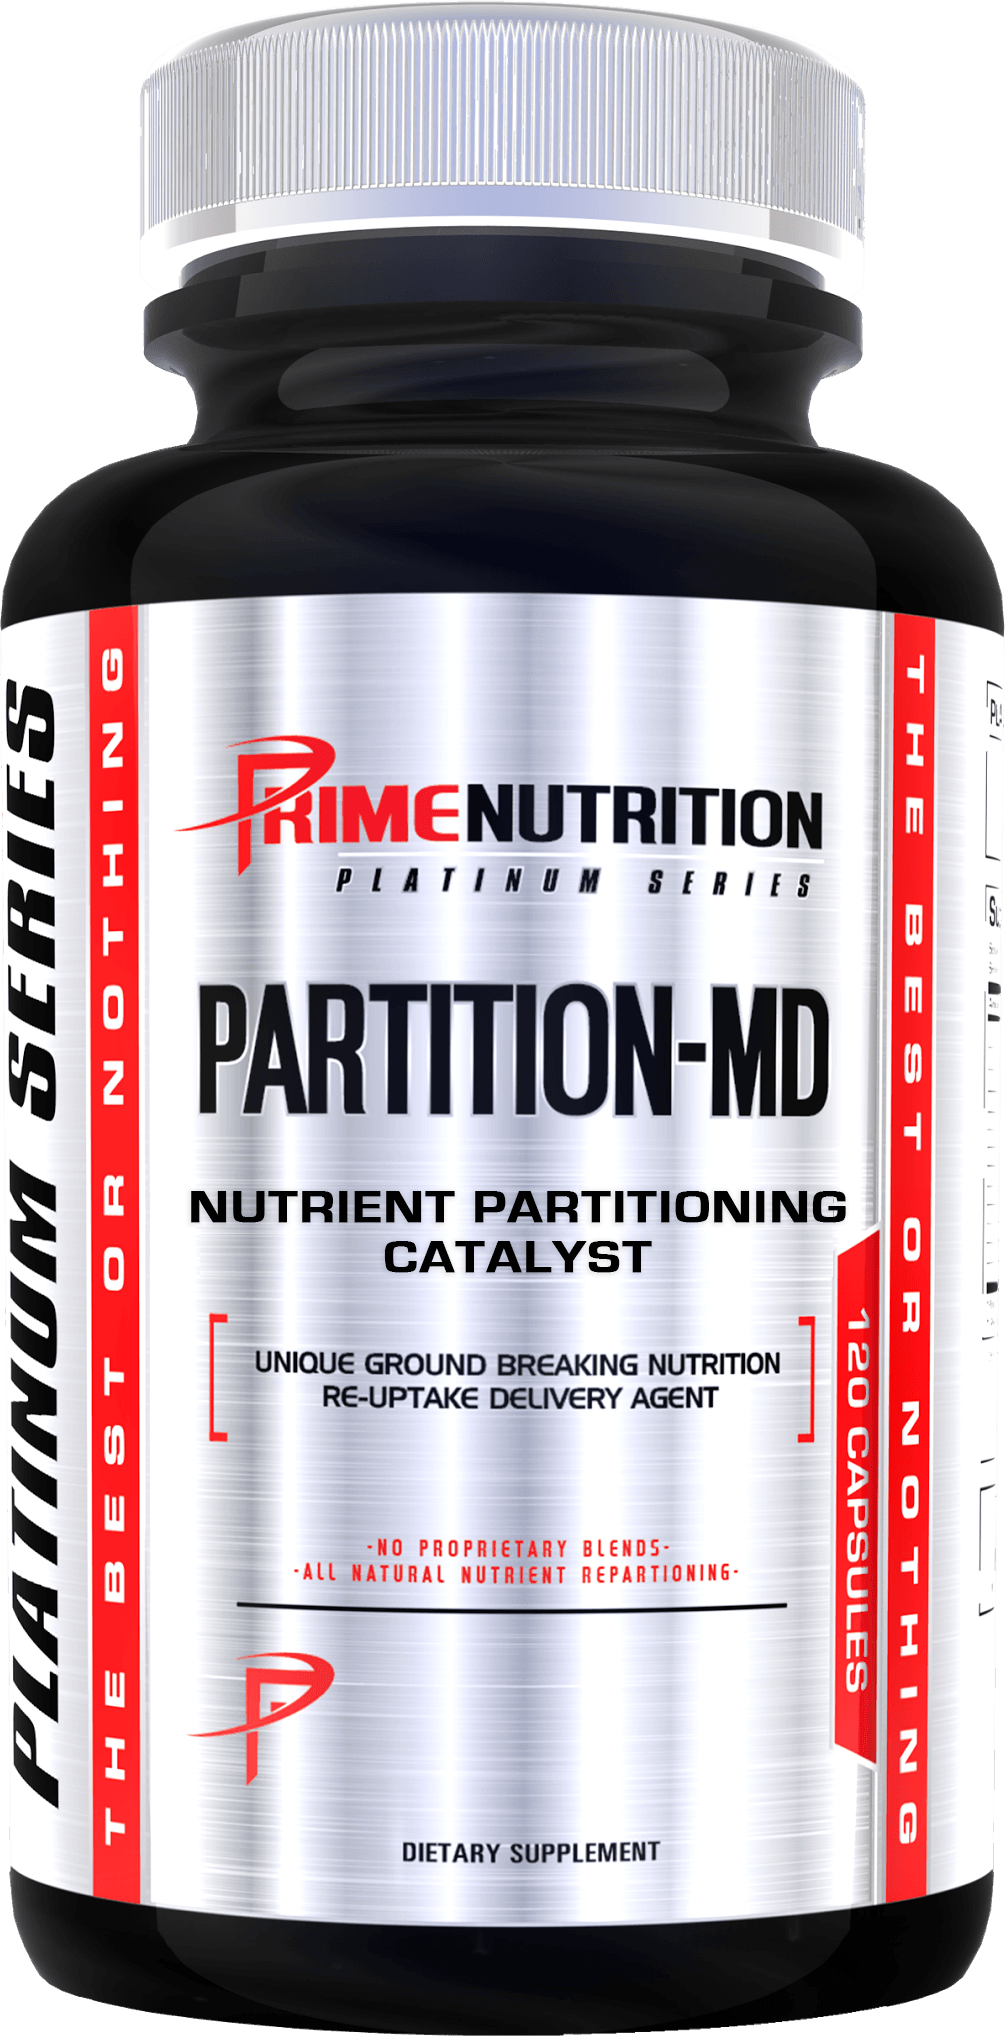 Prime Nutrition​'s Partition-MD is coming out soon: https://blog.priceplow.com/supplement-news/prime-nutrition-partition-md  This is a *nutrient partitioner*, something we absolutely love with carbs but don't write enough about. Anyone into this kind of supp? #PartitionMD